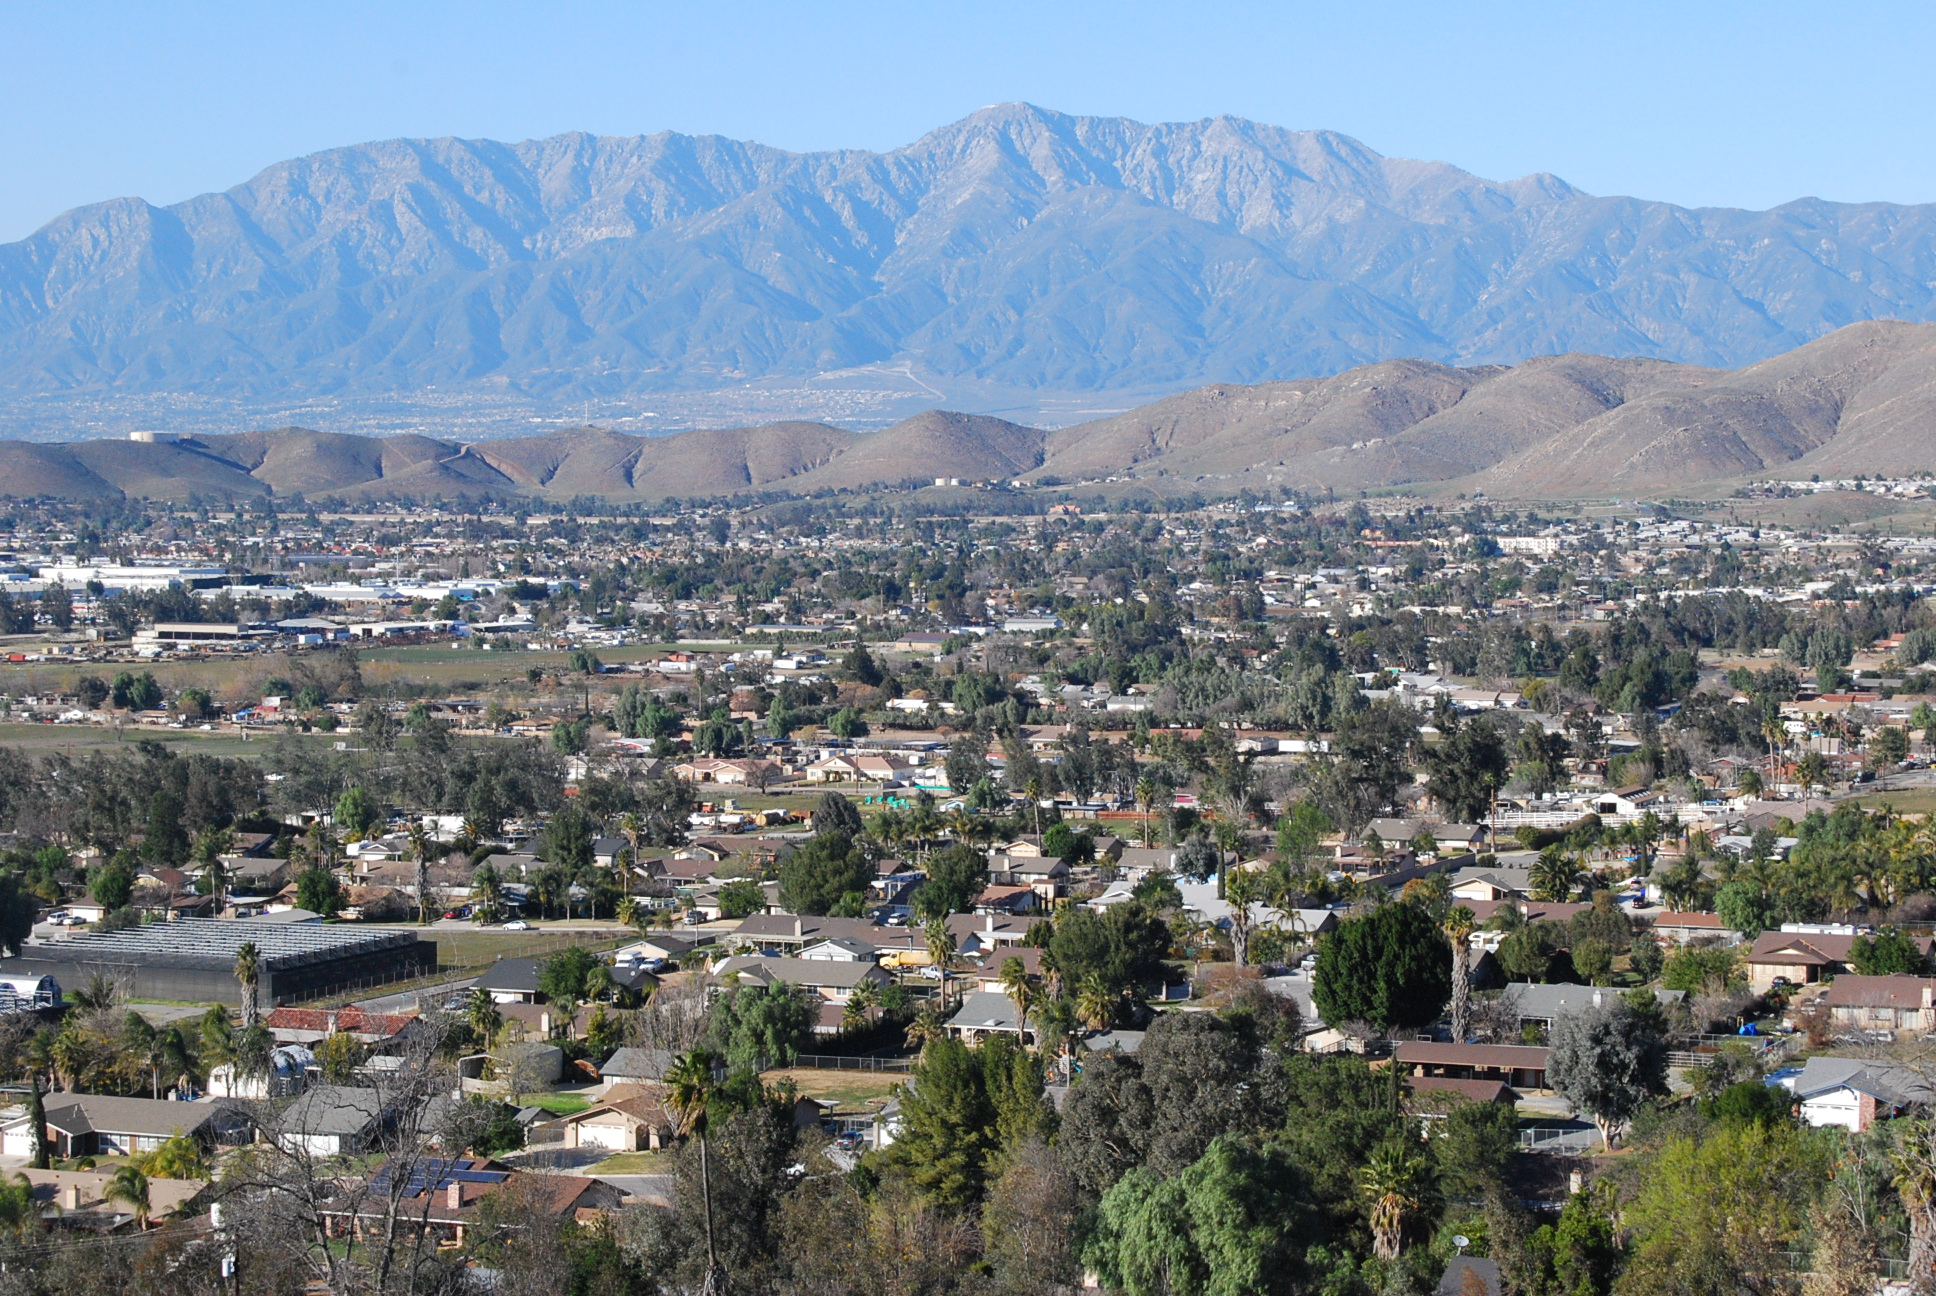 City of Jurupa Valley